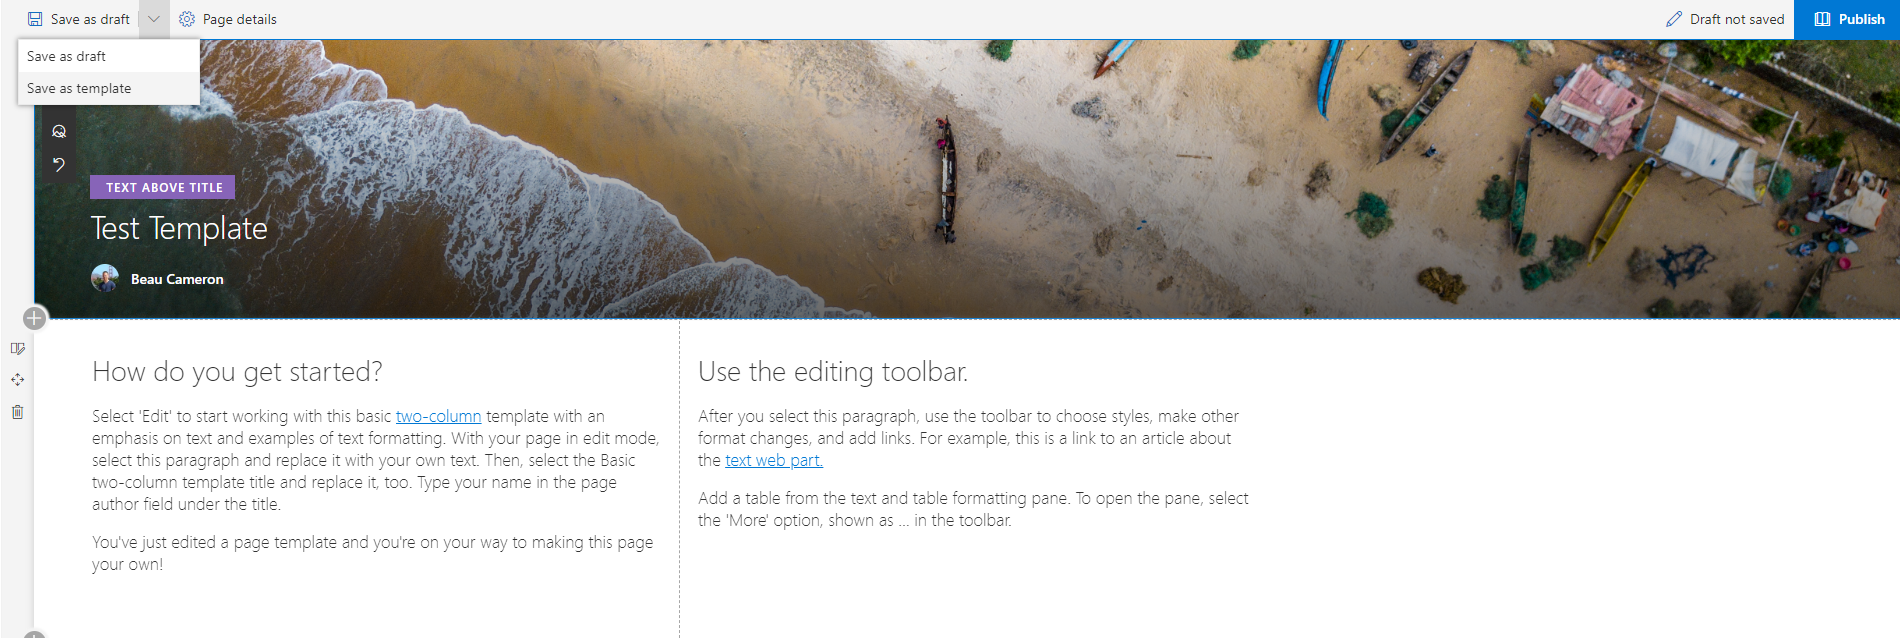 Exploring Modern page templates in SharePoint Online with REST